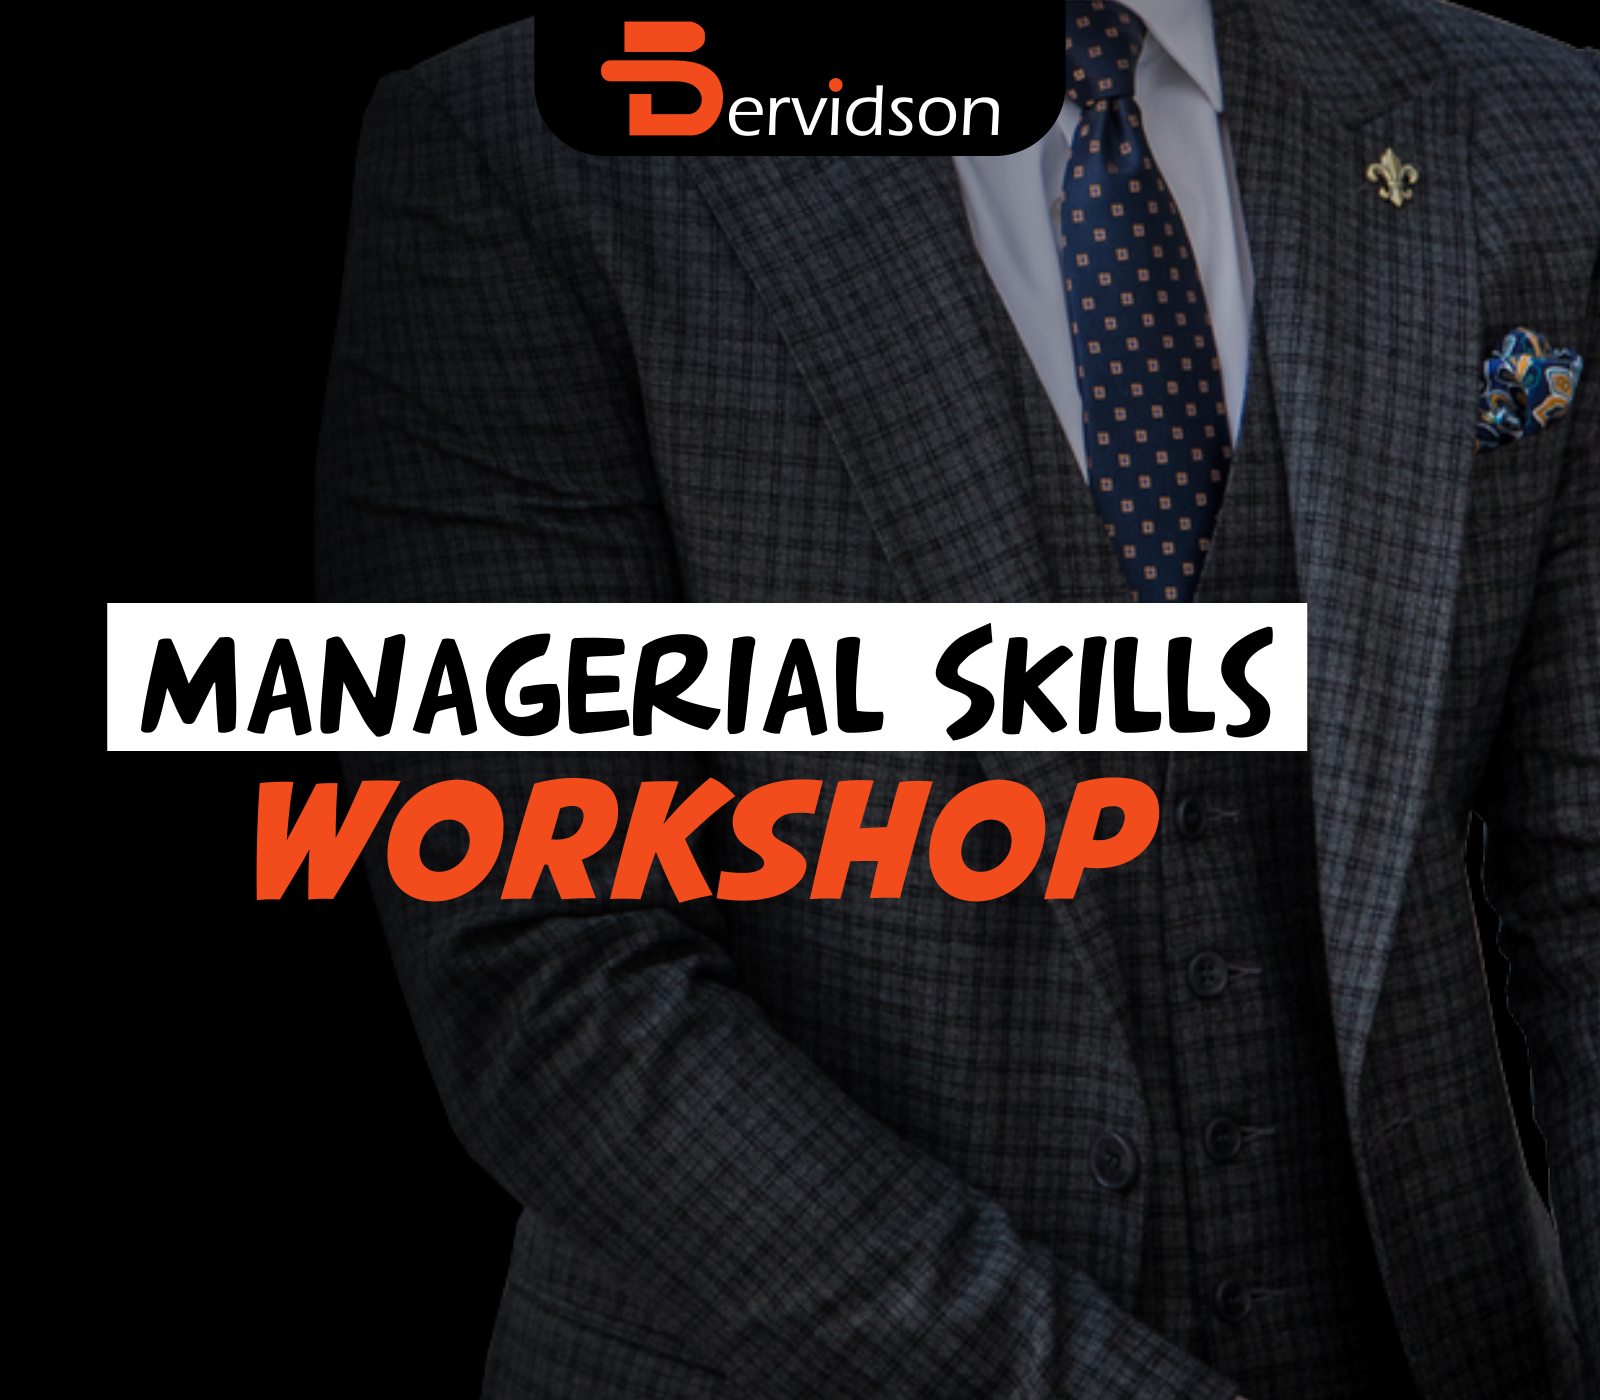 Managerial Skills Workshop